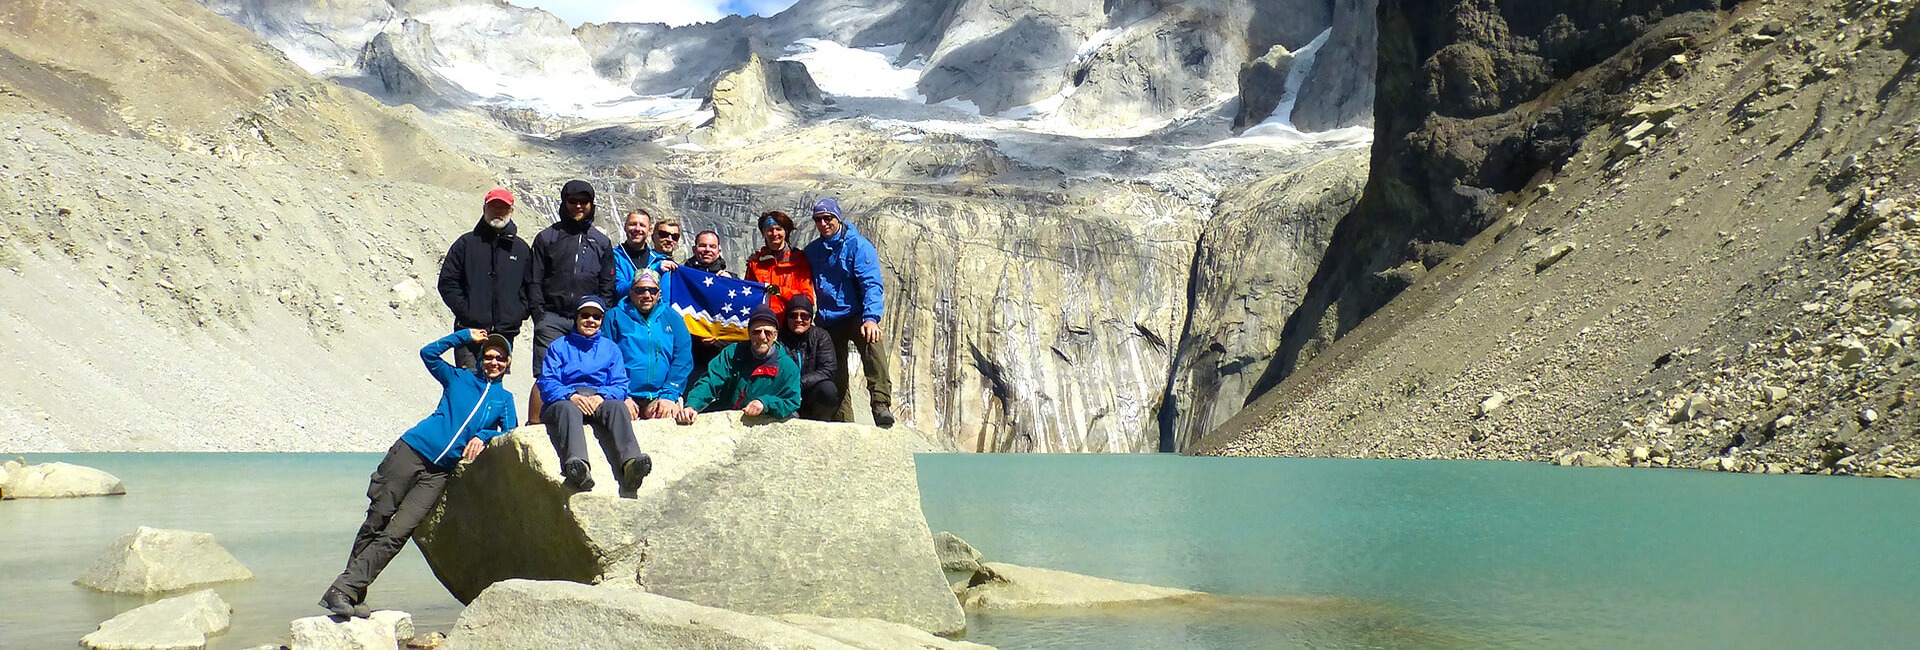 Hiking Group at Torres del Paine Towers